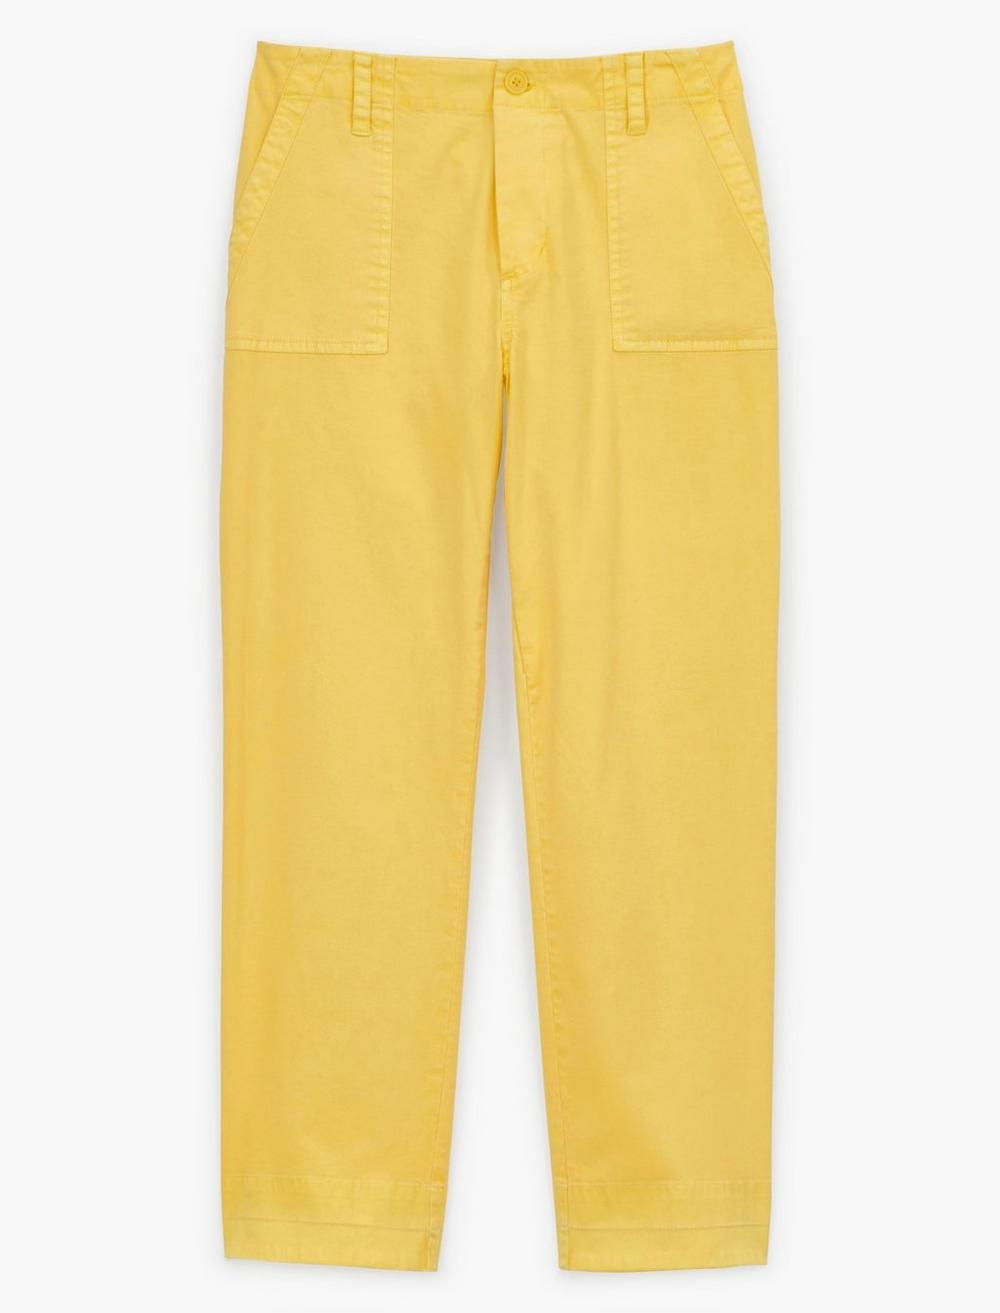 MID RISE UTILITY STRAIGHT PANT, image 6